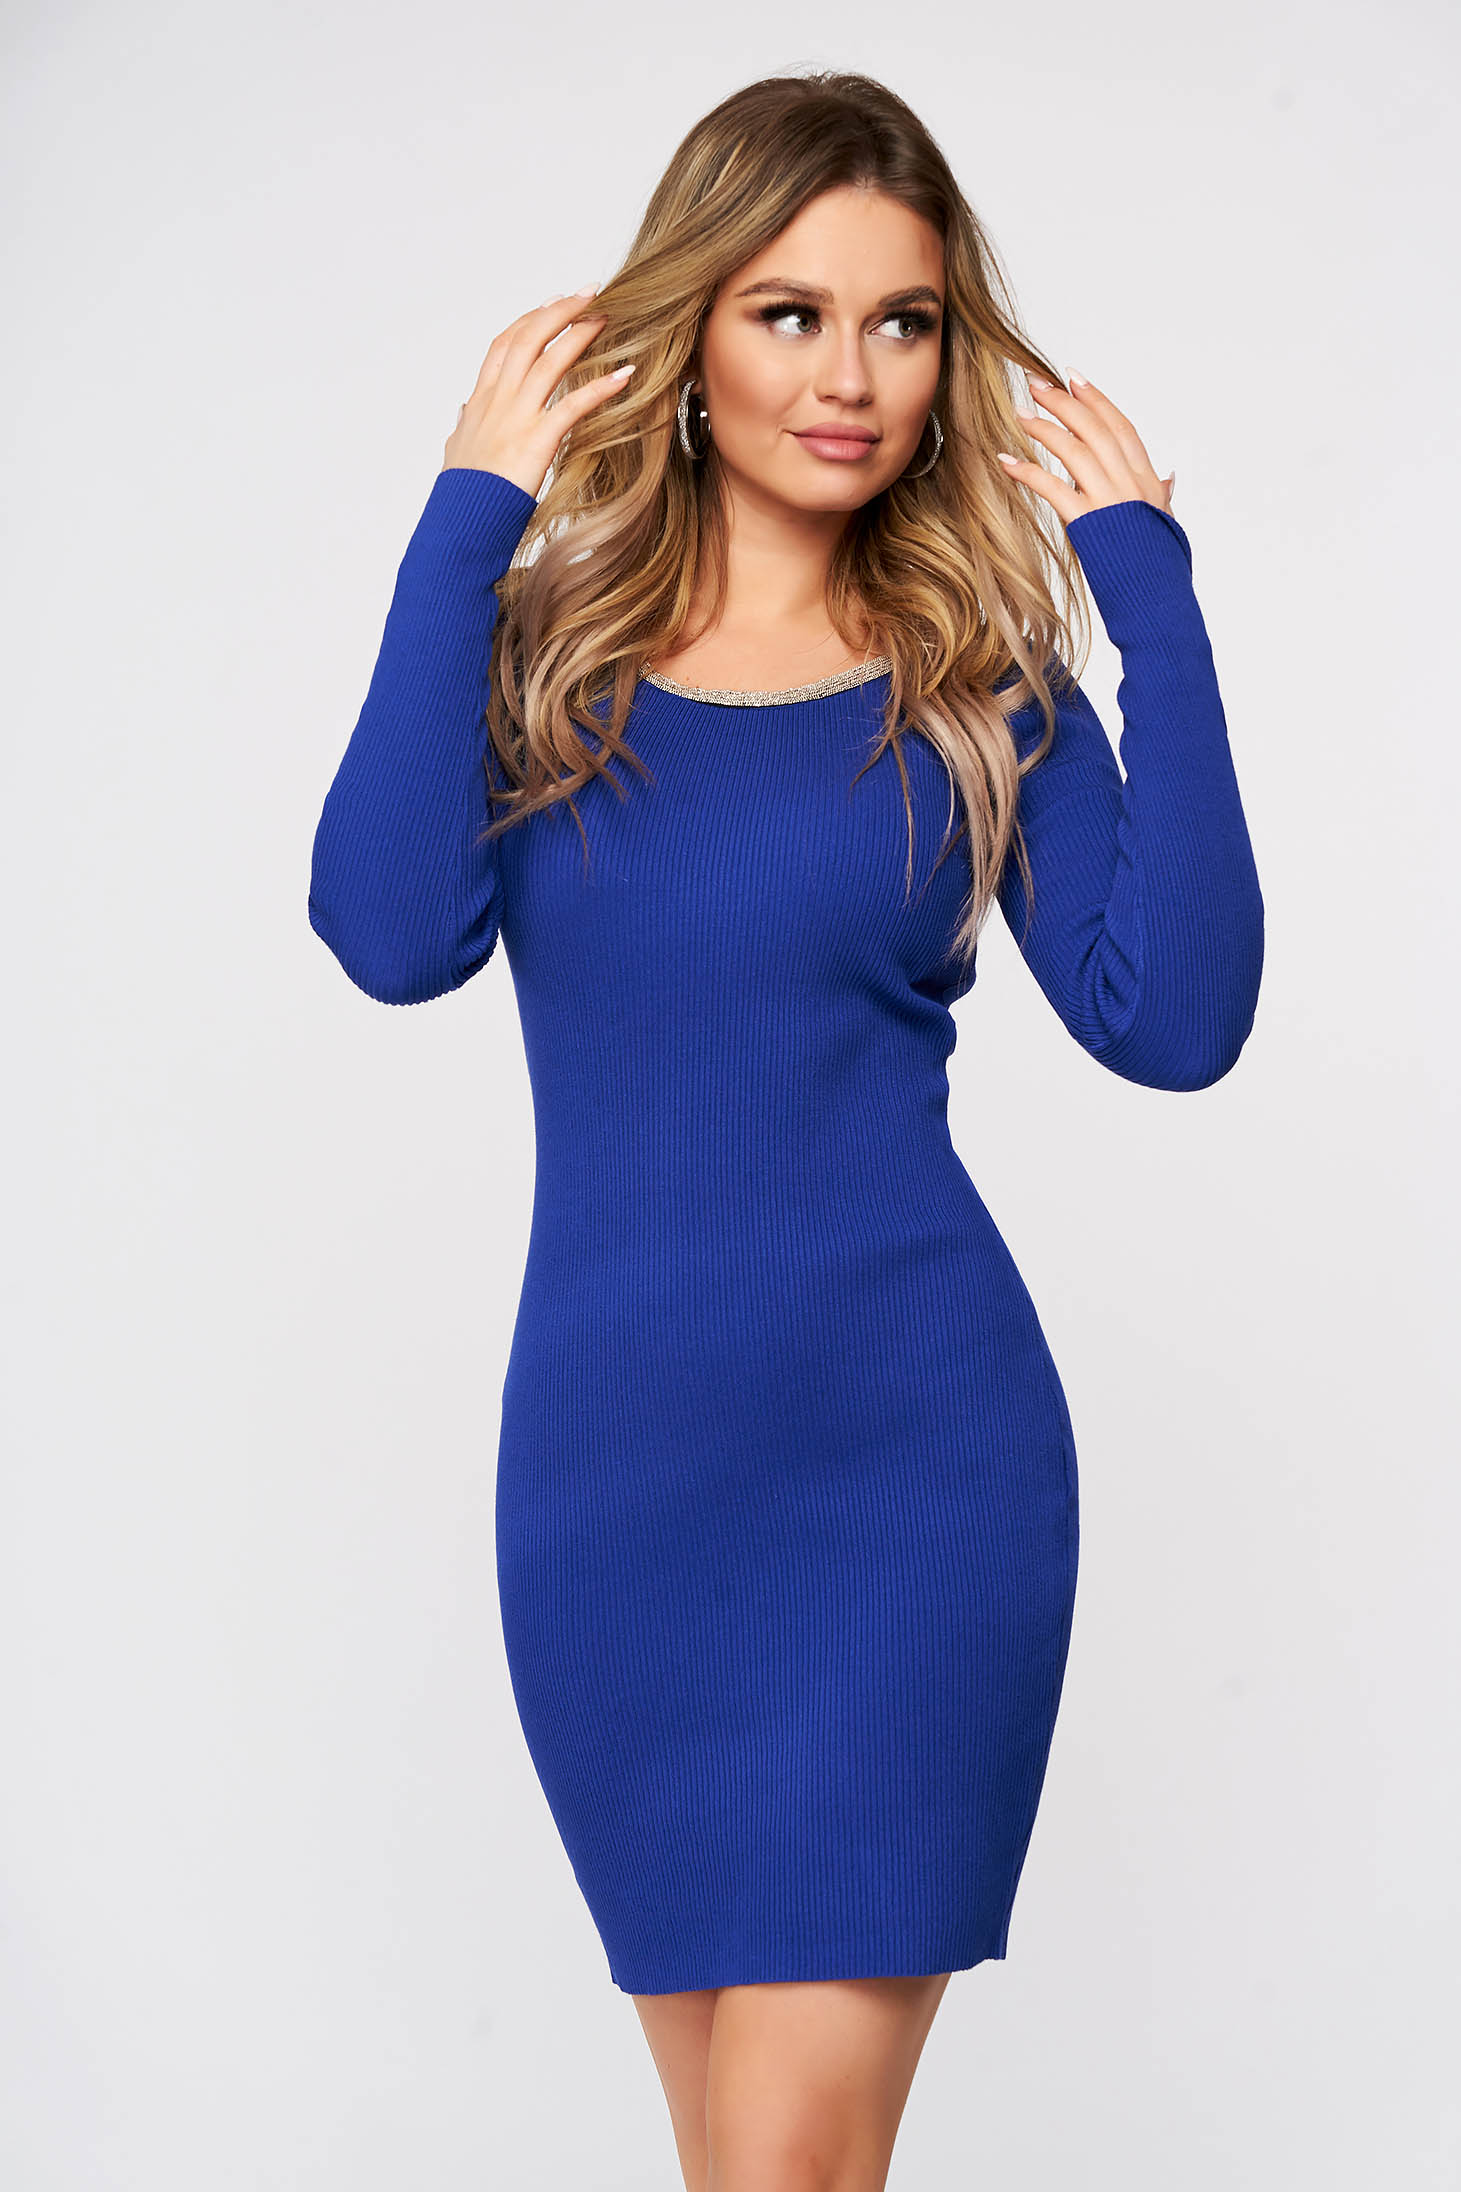 Blue dress from elastic fabric from striped fabric knitted with metal accessories neckline